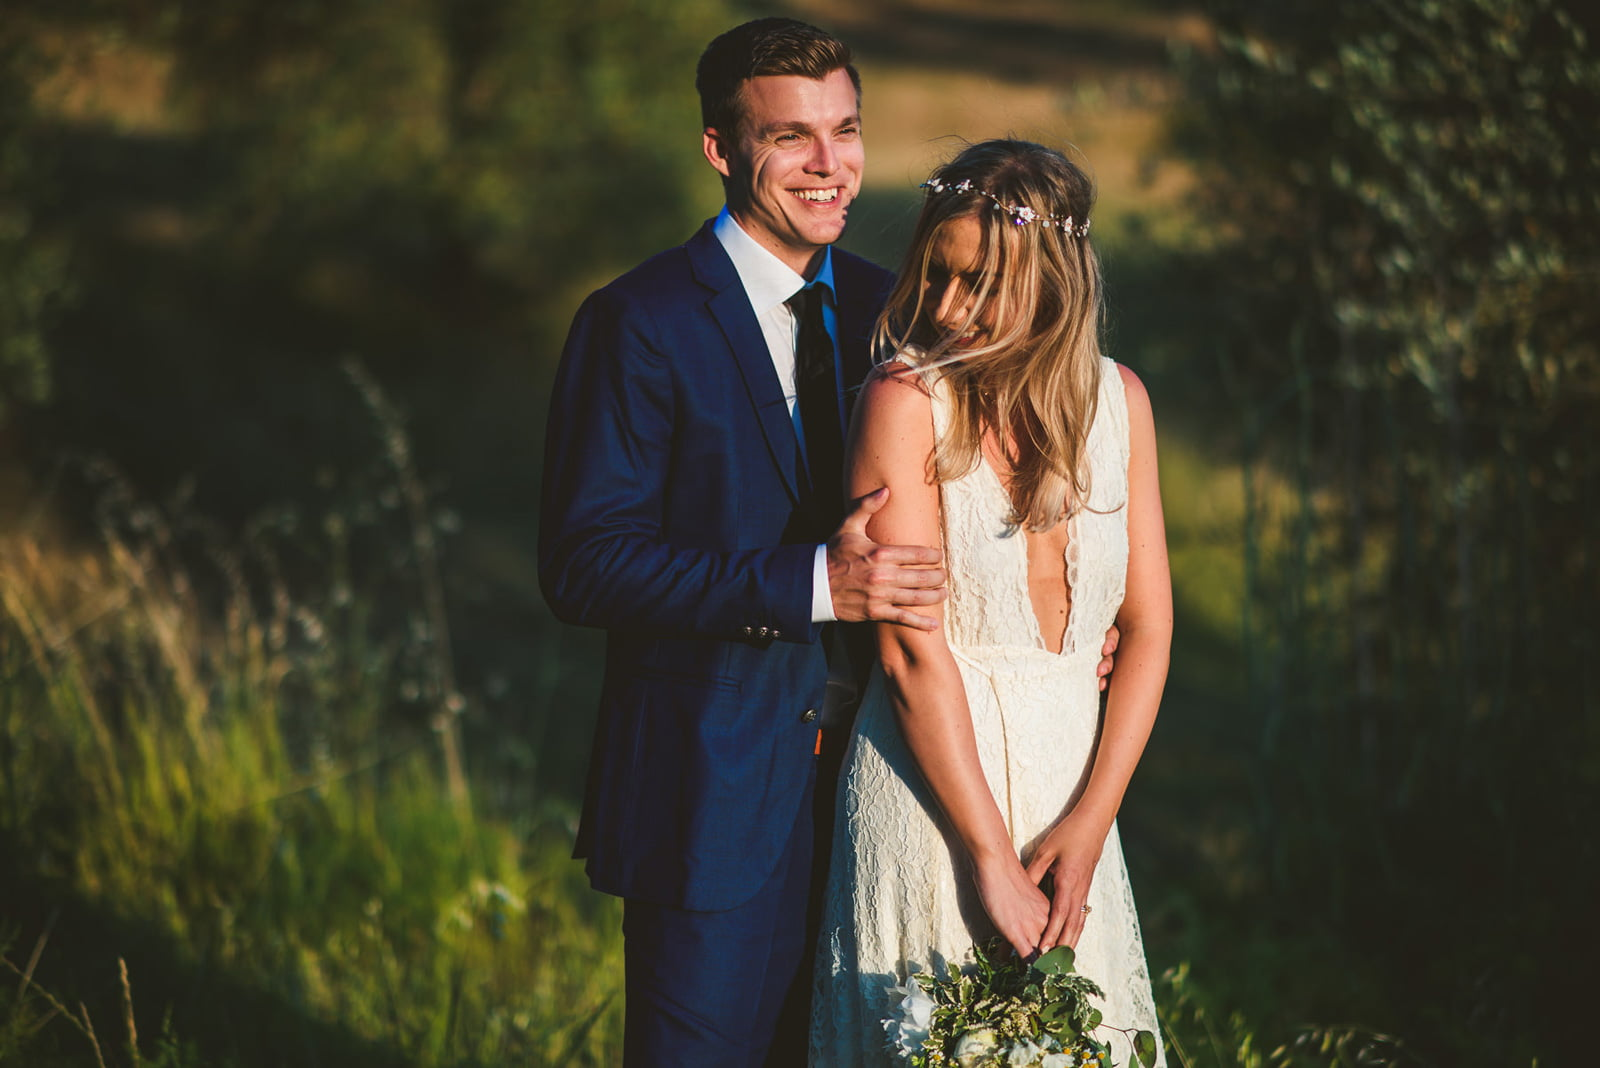 A+L Wedding at Montechiaro, Siena by Federico Pannacci 78